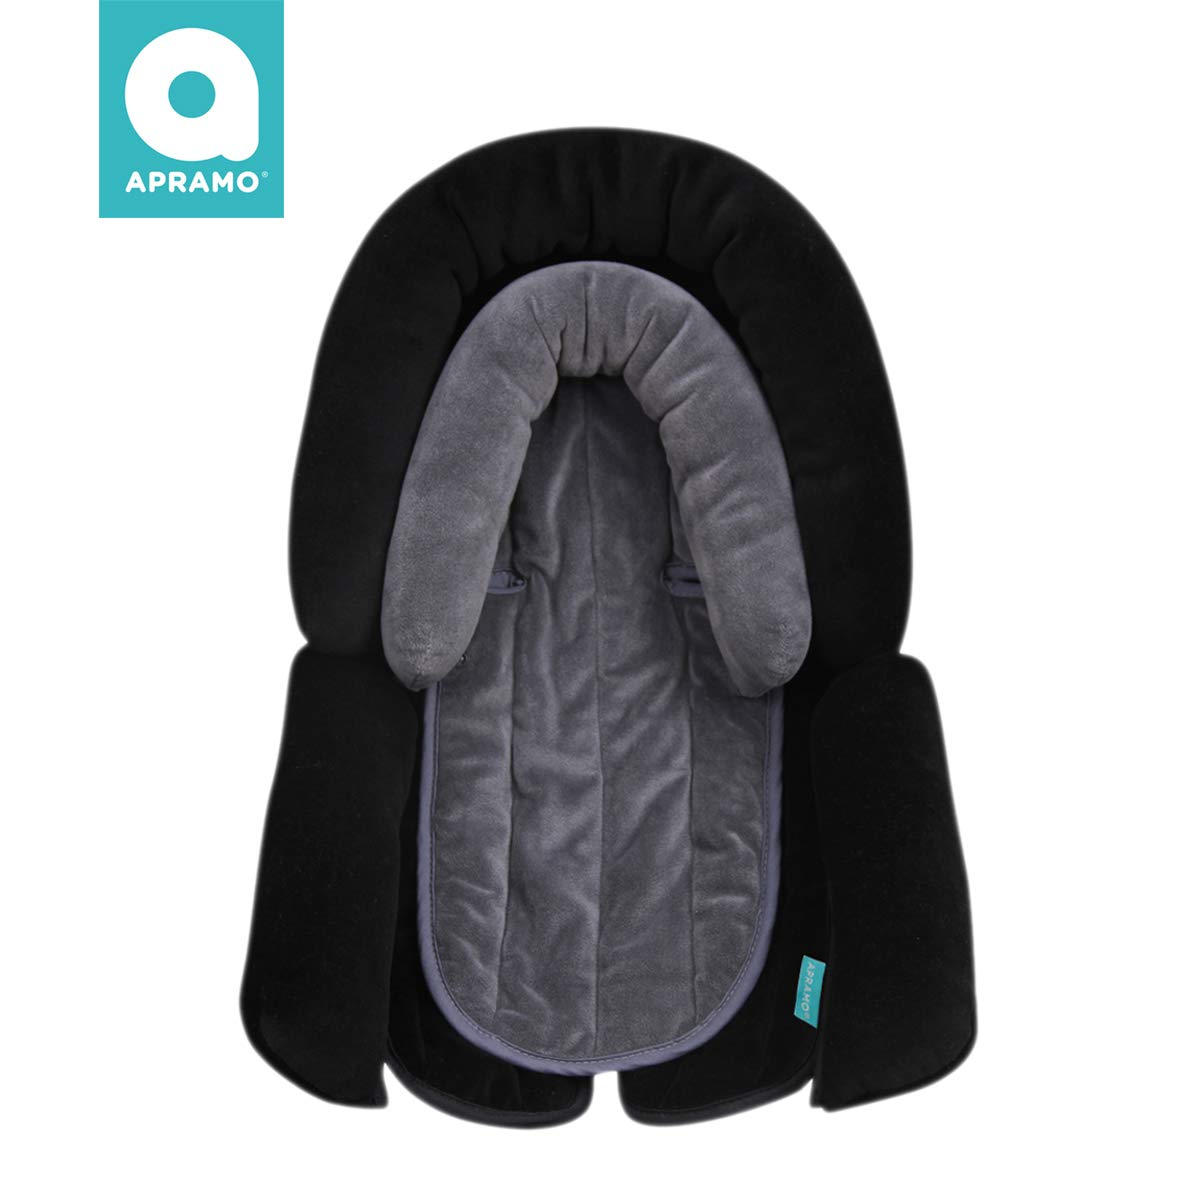 APRAMO 2-In-1 Baby Head Support Infant Toddler Head, Neck,Body Soft Cushion Perfect for Car Seats Strollers Double Layers Black Grey